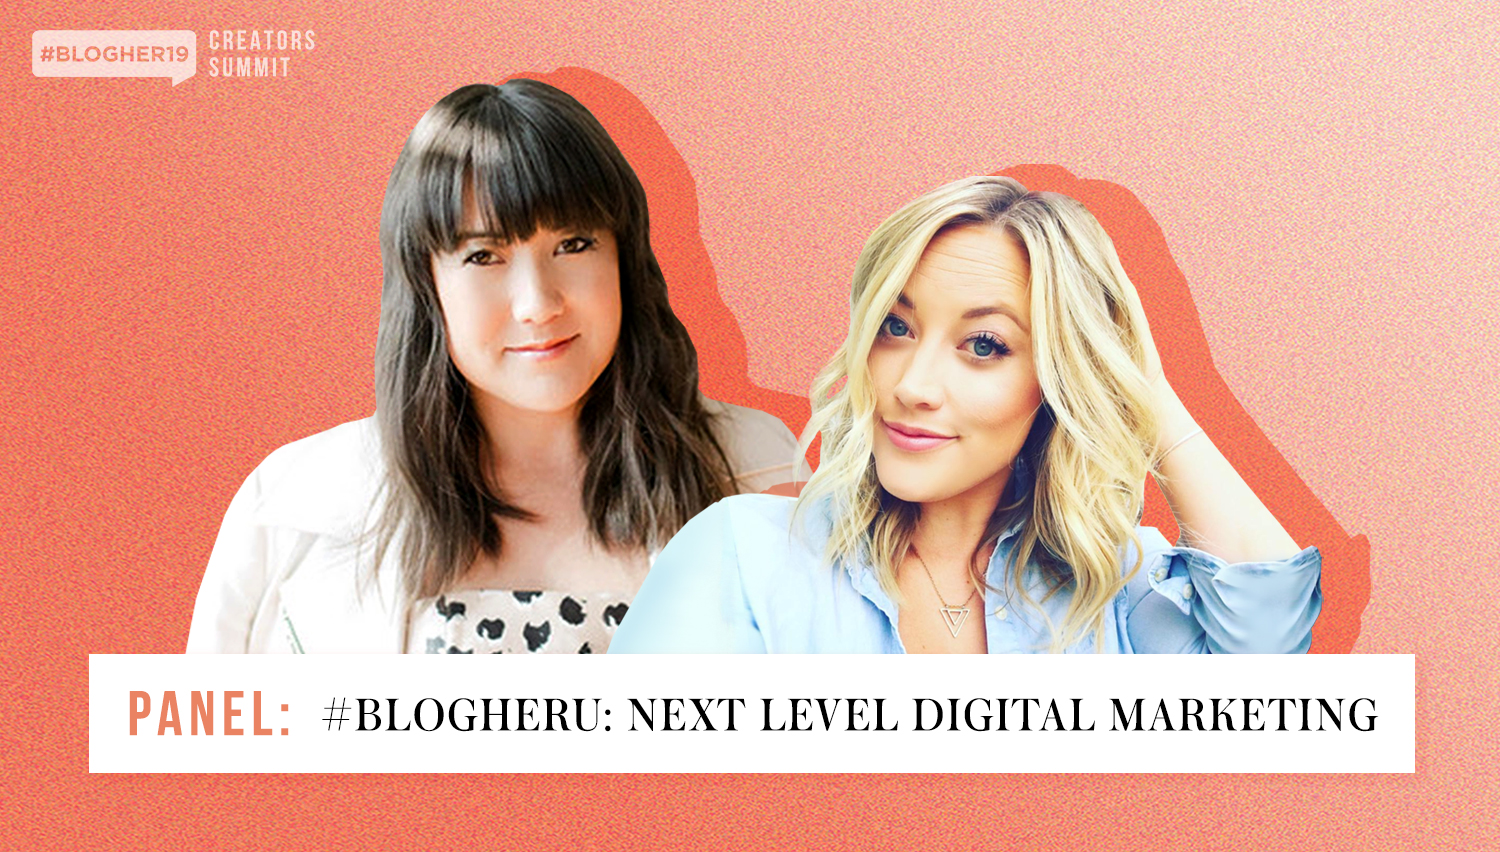 learn how to use all things digital to boost your brand - In this session at #BlogHer19 Creators Summit, Constant Contact's Jenna Shaffer and Unique Markets' Sonja Rasula will share how to use social, Google, and E-mail to get the word out about your business and increase engagement from your followers.